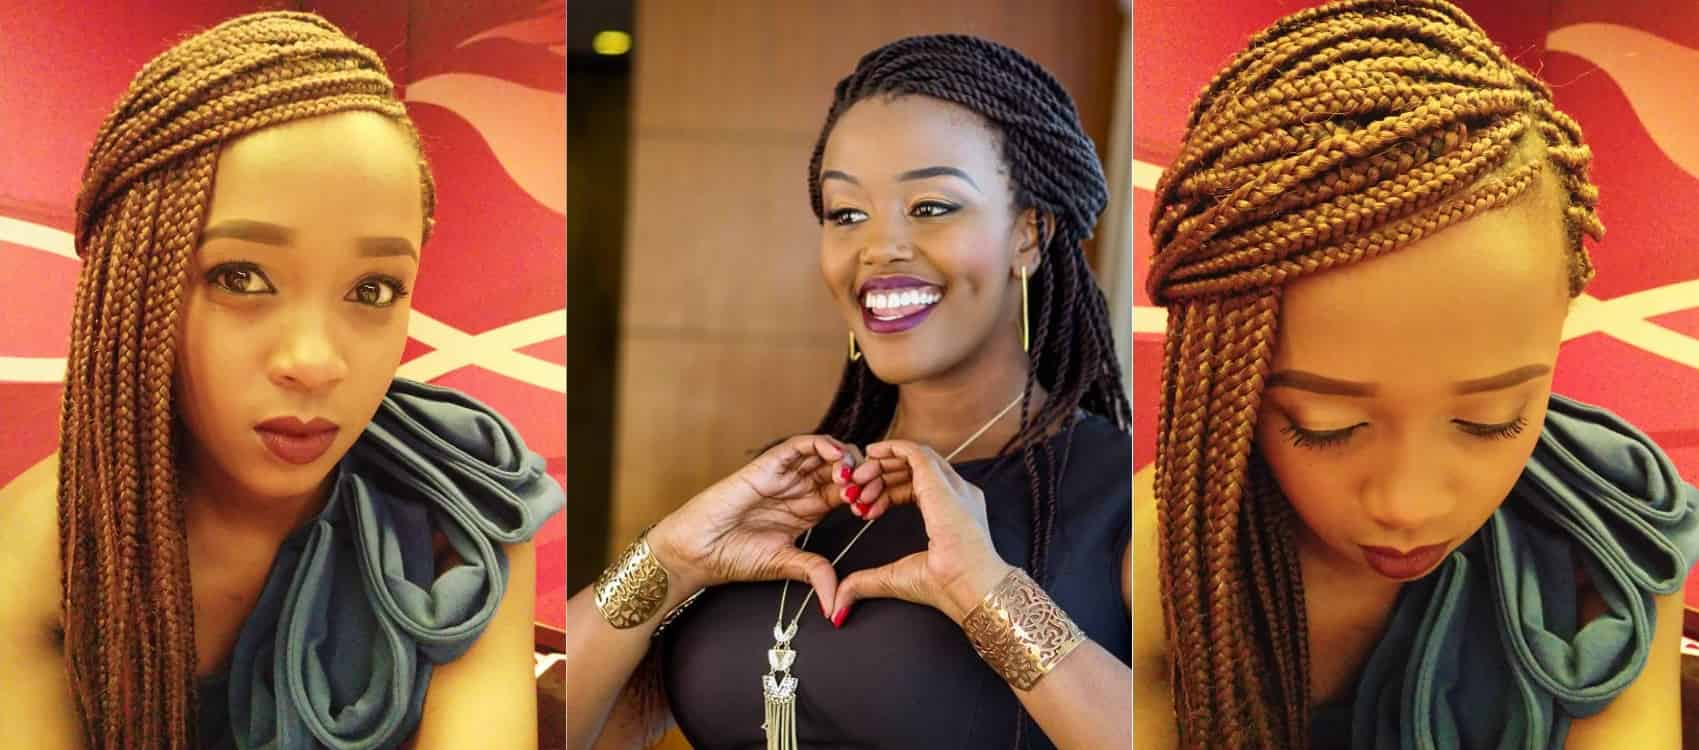 kenyan ladies, here are 10 gorgeous styles to rock in braids this